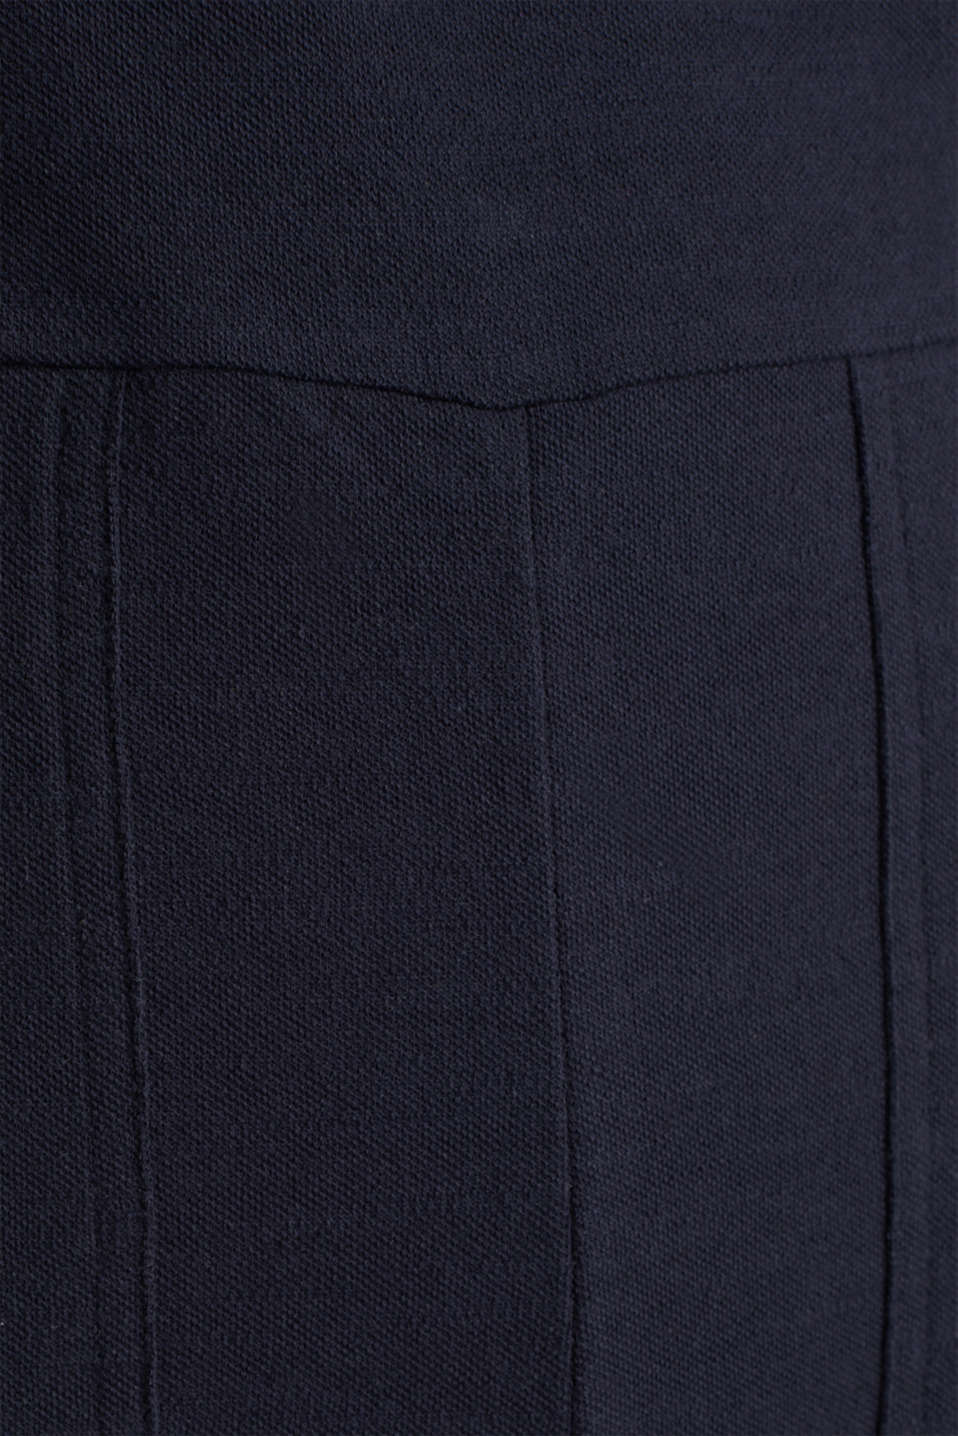 Blended linen jumpsuit, NAVY, detail image number 4